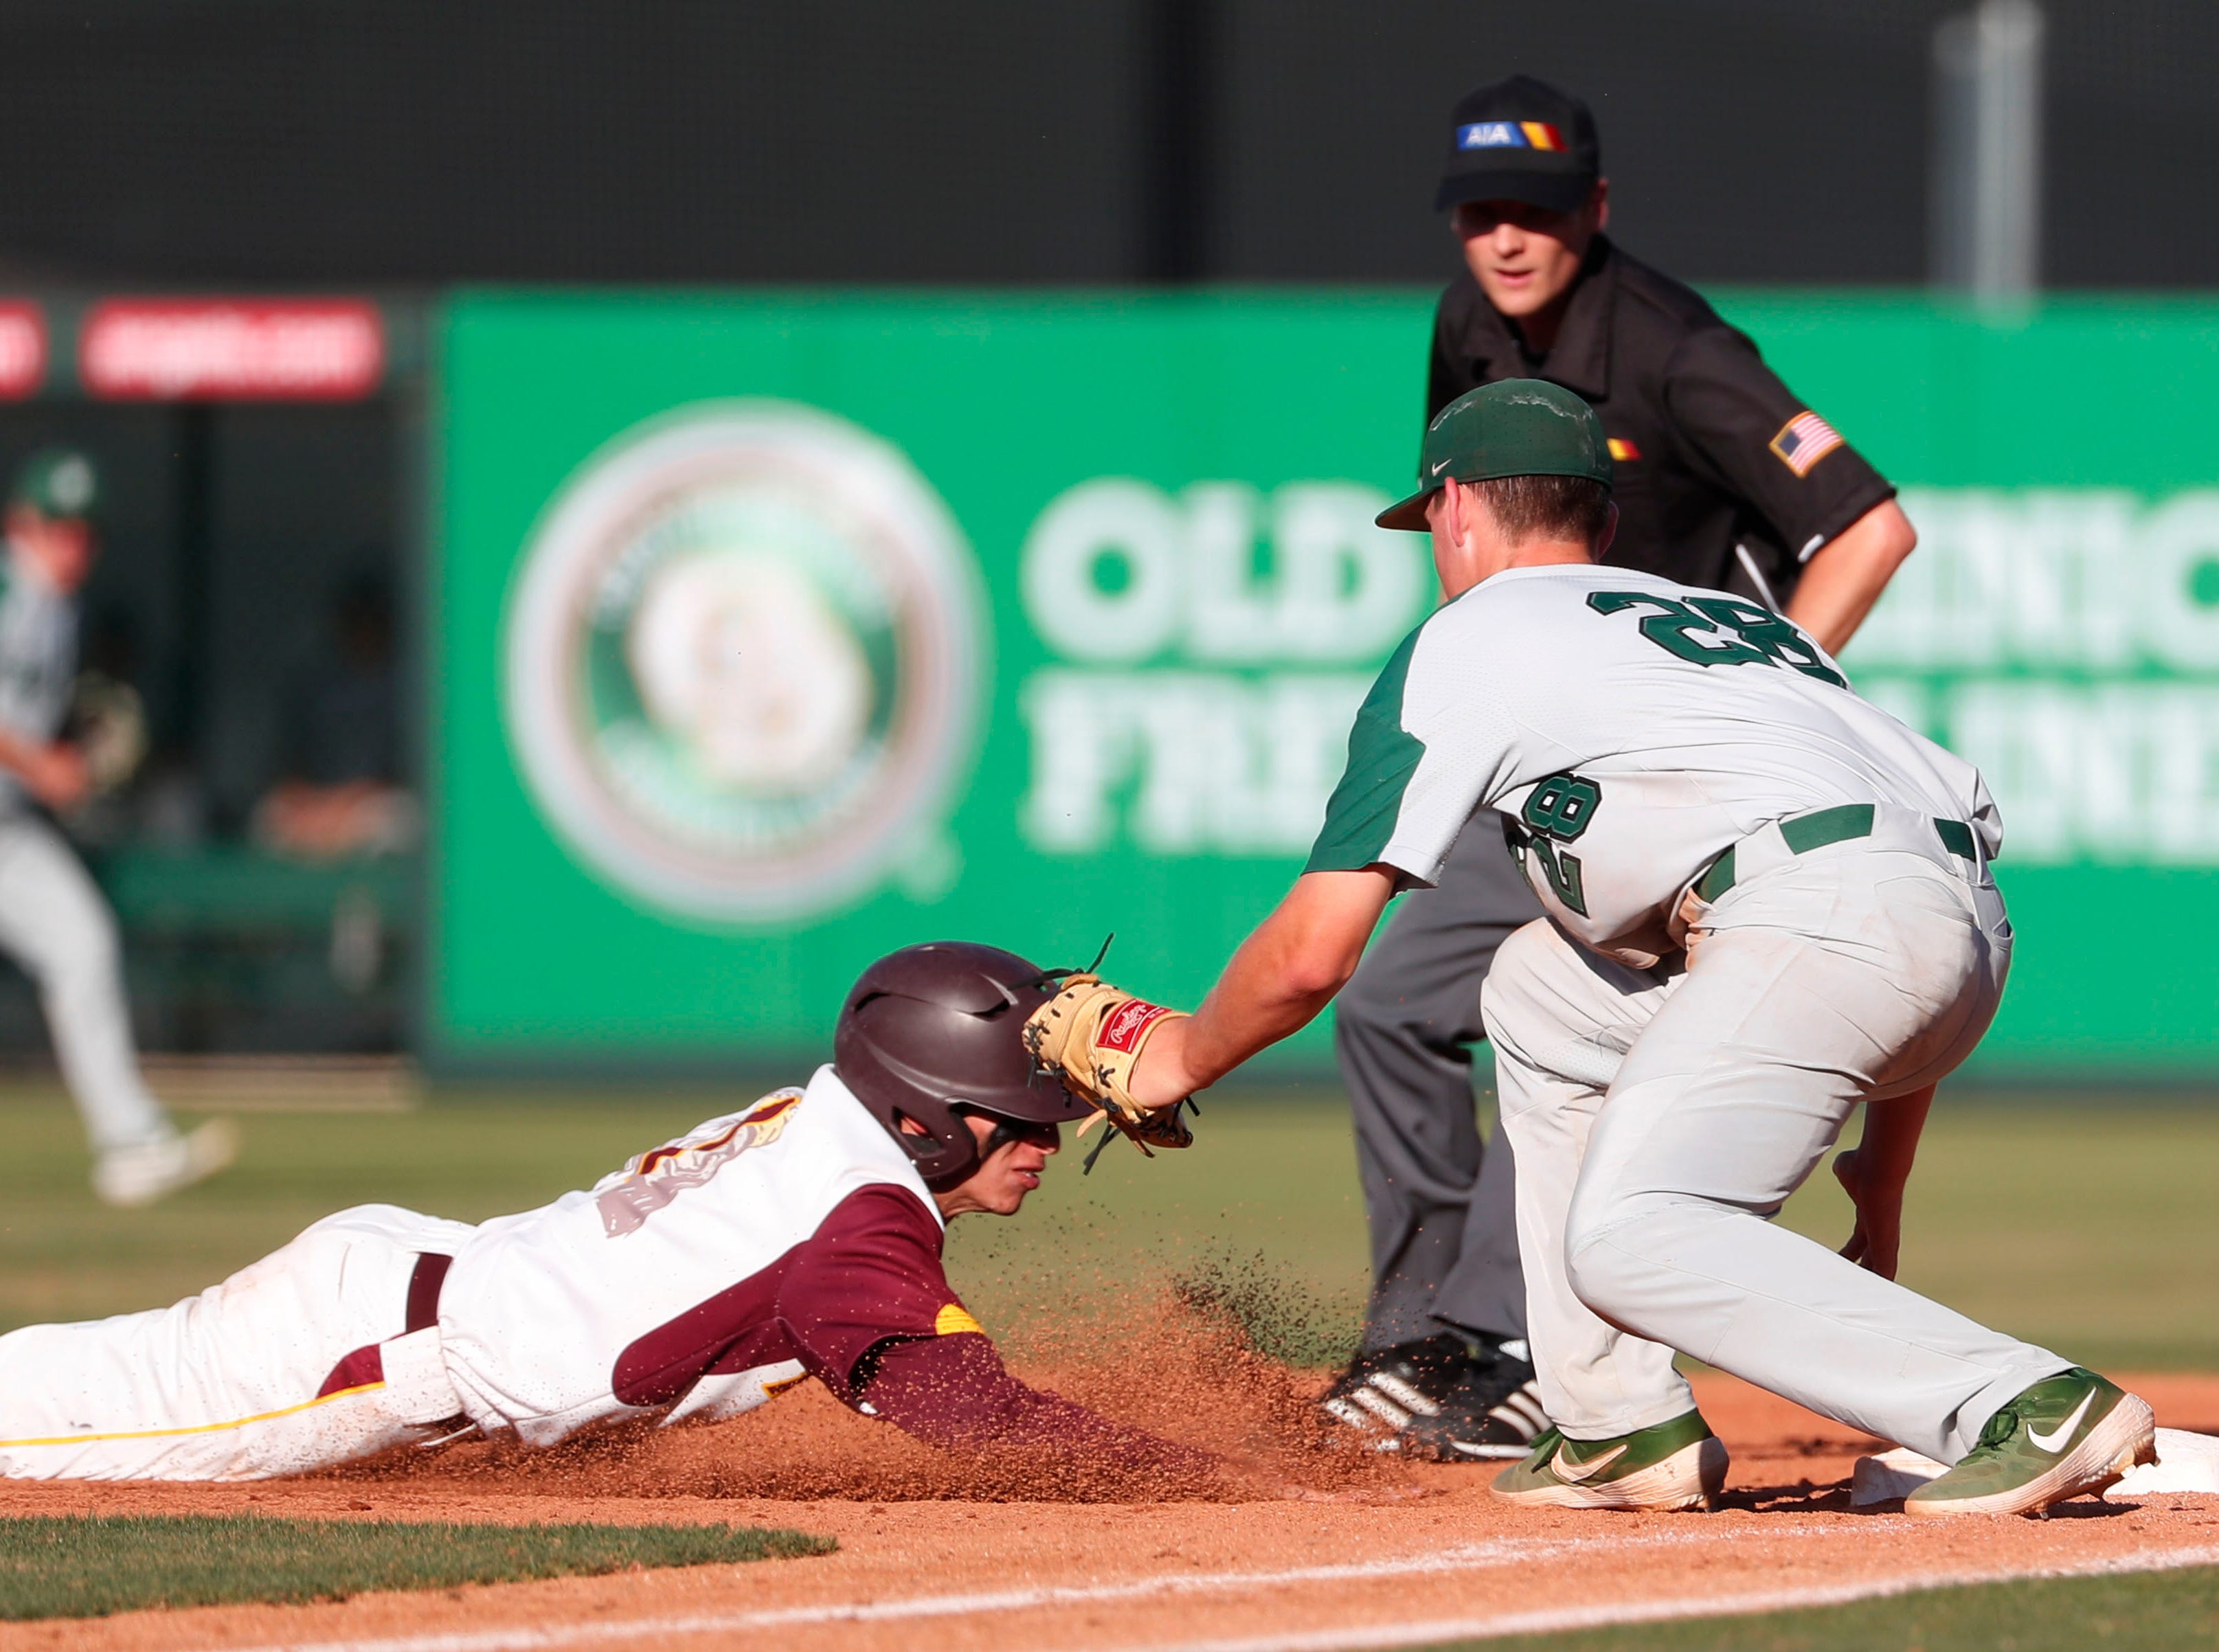 Horizon first baseman Nick Gore (28) tags out Nogales' Luis Rodriguez (1) during the 5A State Baseball Championship in Tempe, Ariz. May 14, 2019.